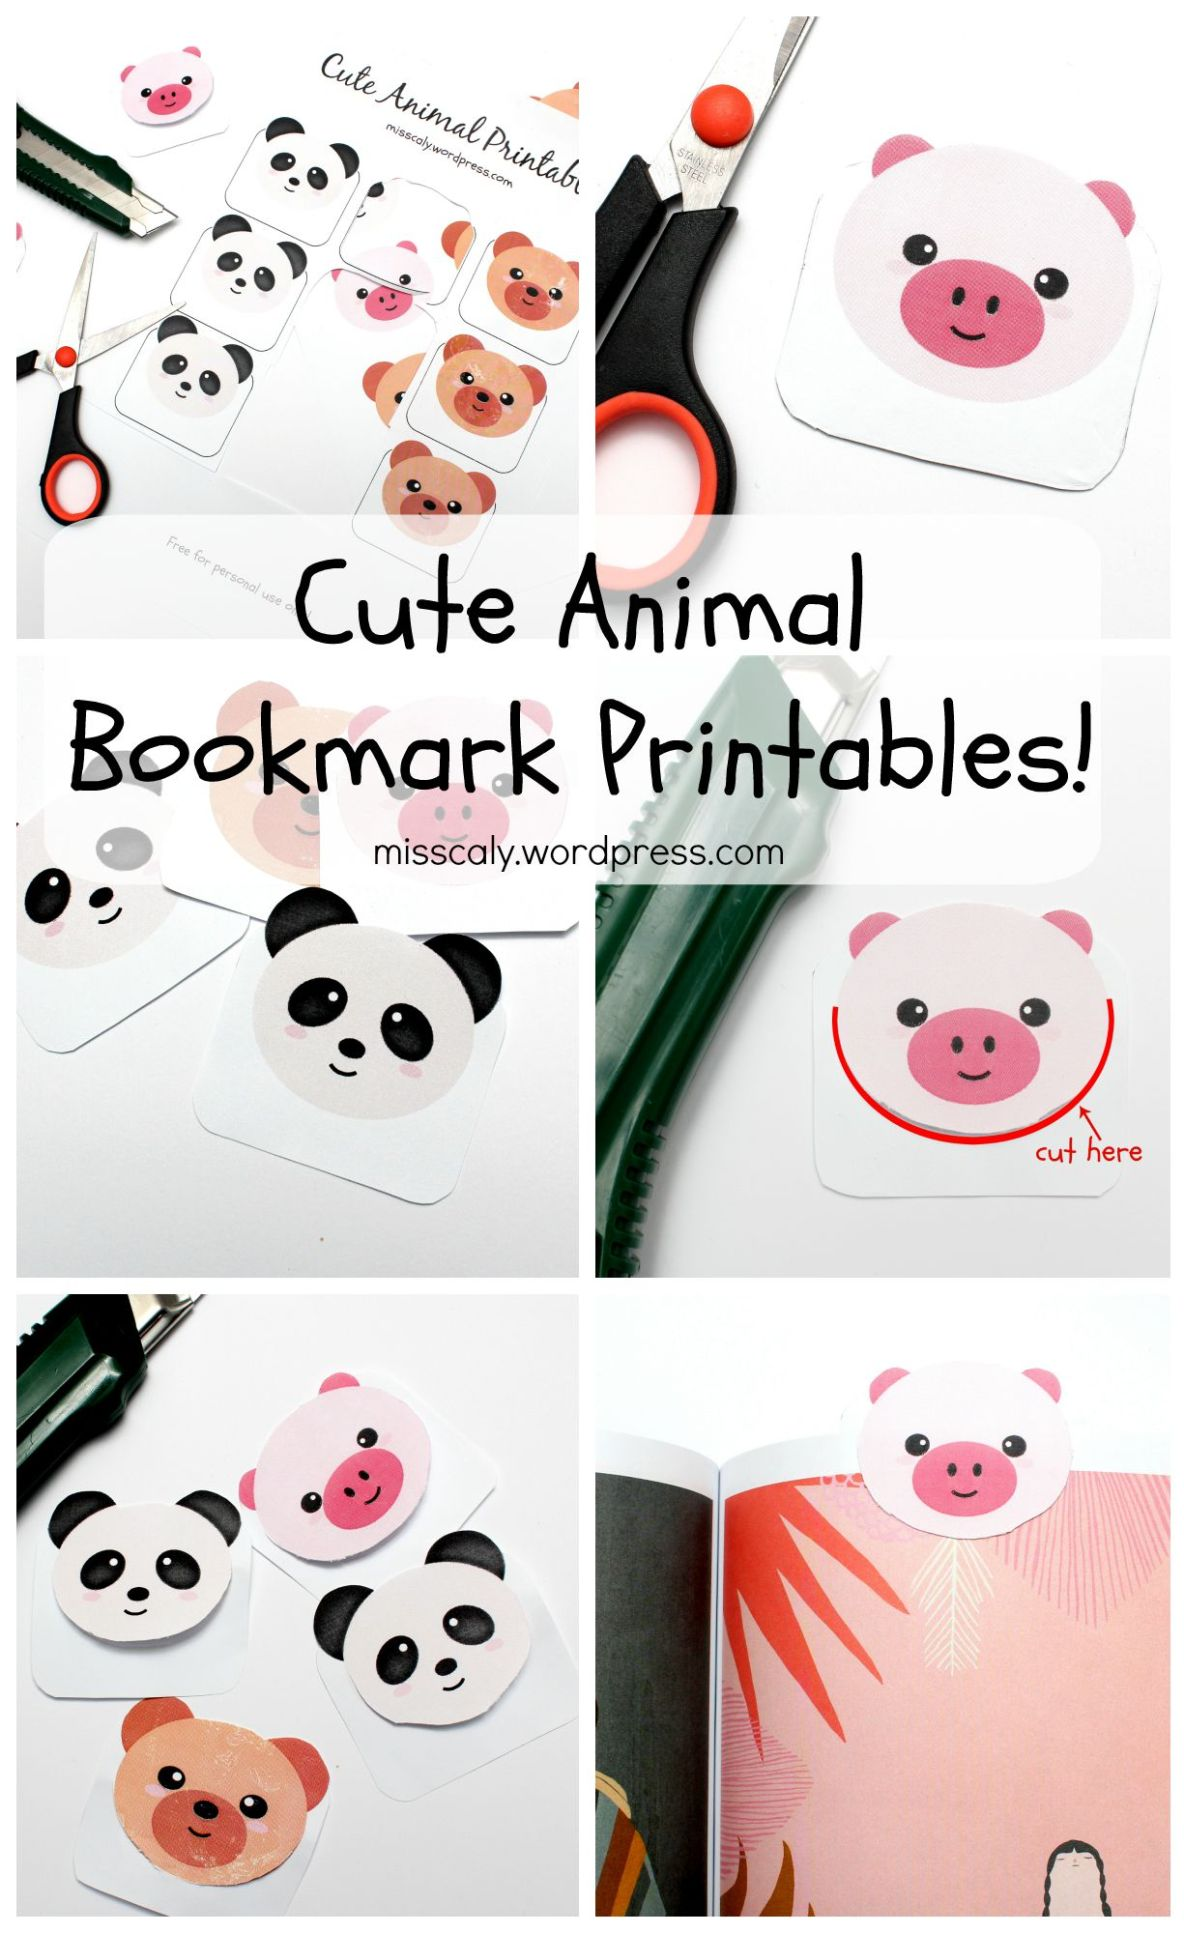 Cute animal bookmark printables